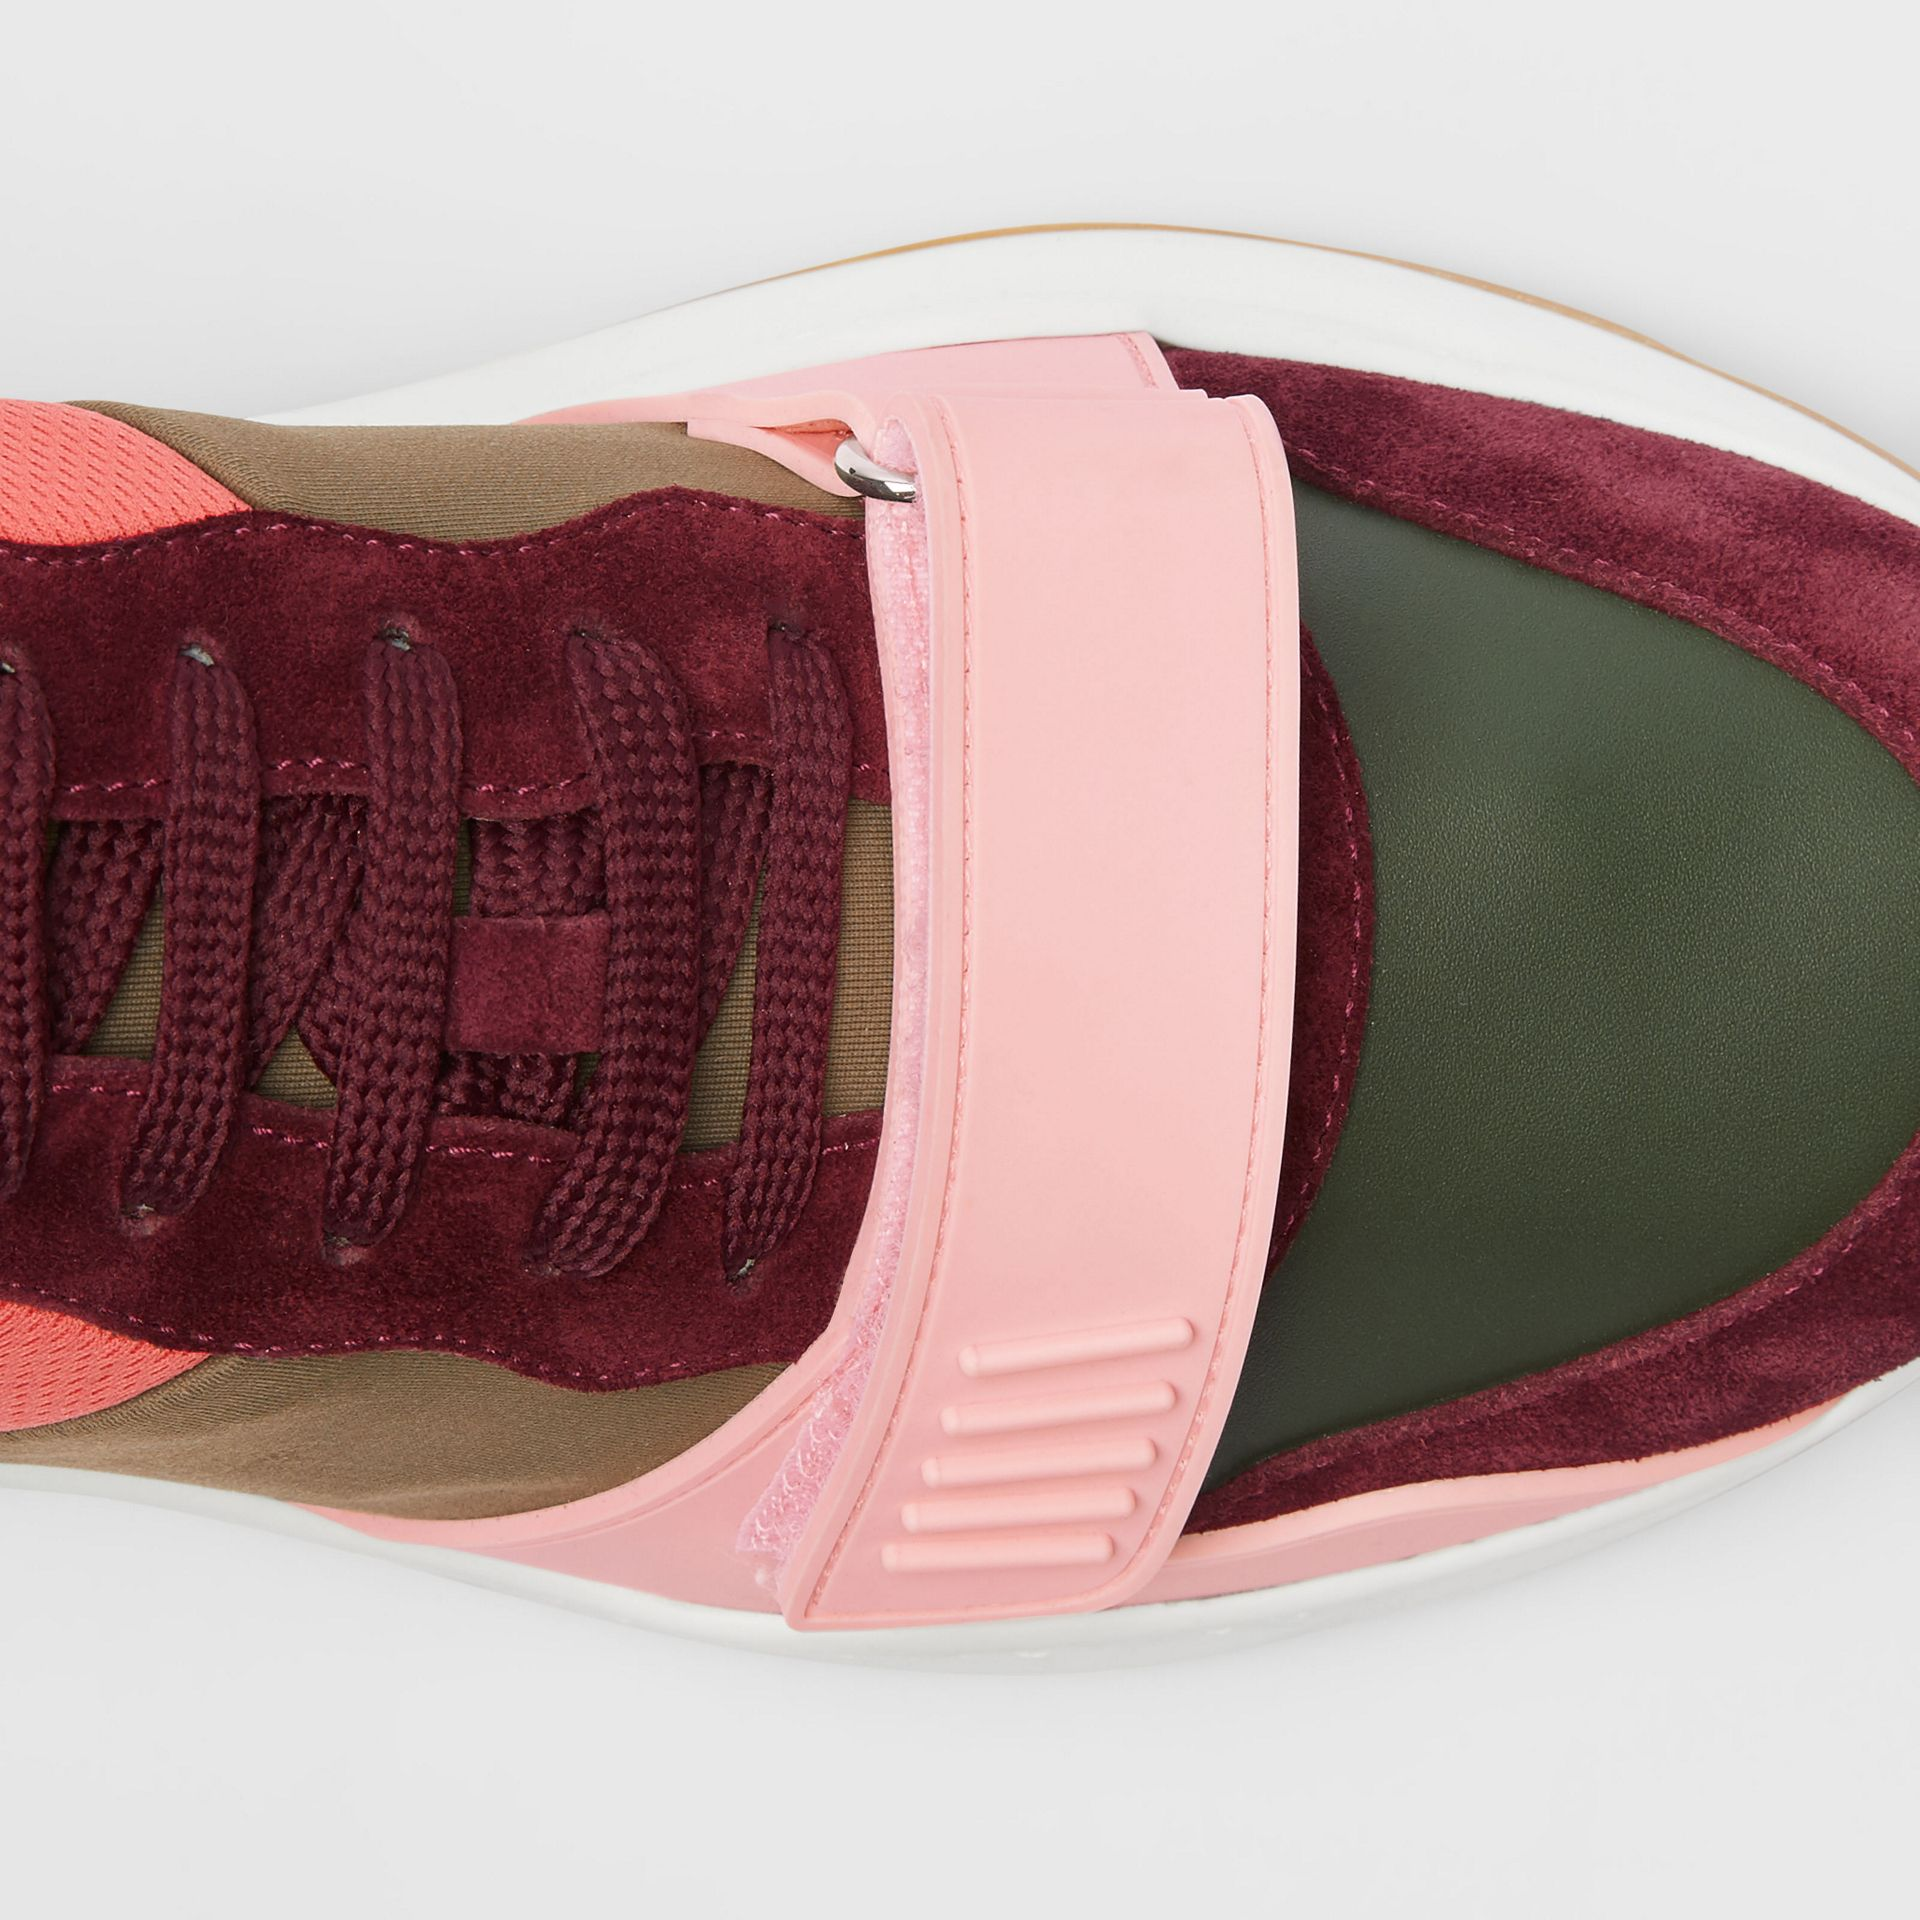 Sneakers en cuir velours et néoprène color-block (Bordeaux/kaki) - Homme | Burberry Canada - photo de la galerie 1